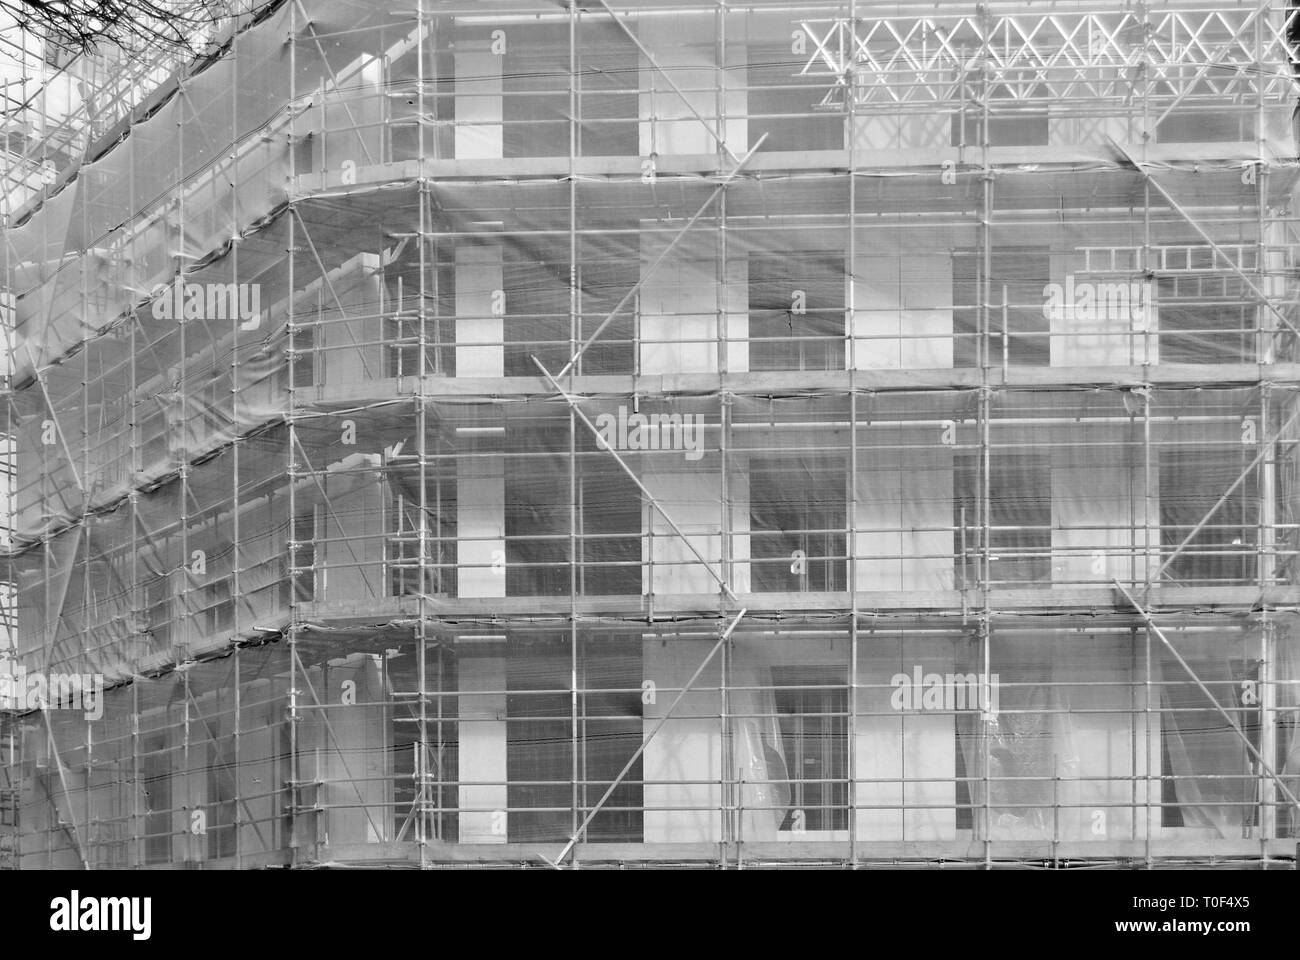 Protection net structure covering building on construction site, Black and white photography. - Stock Image